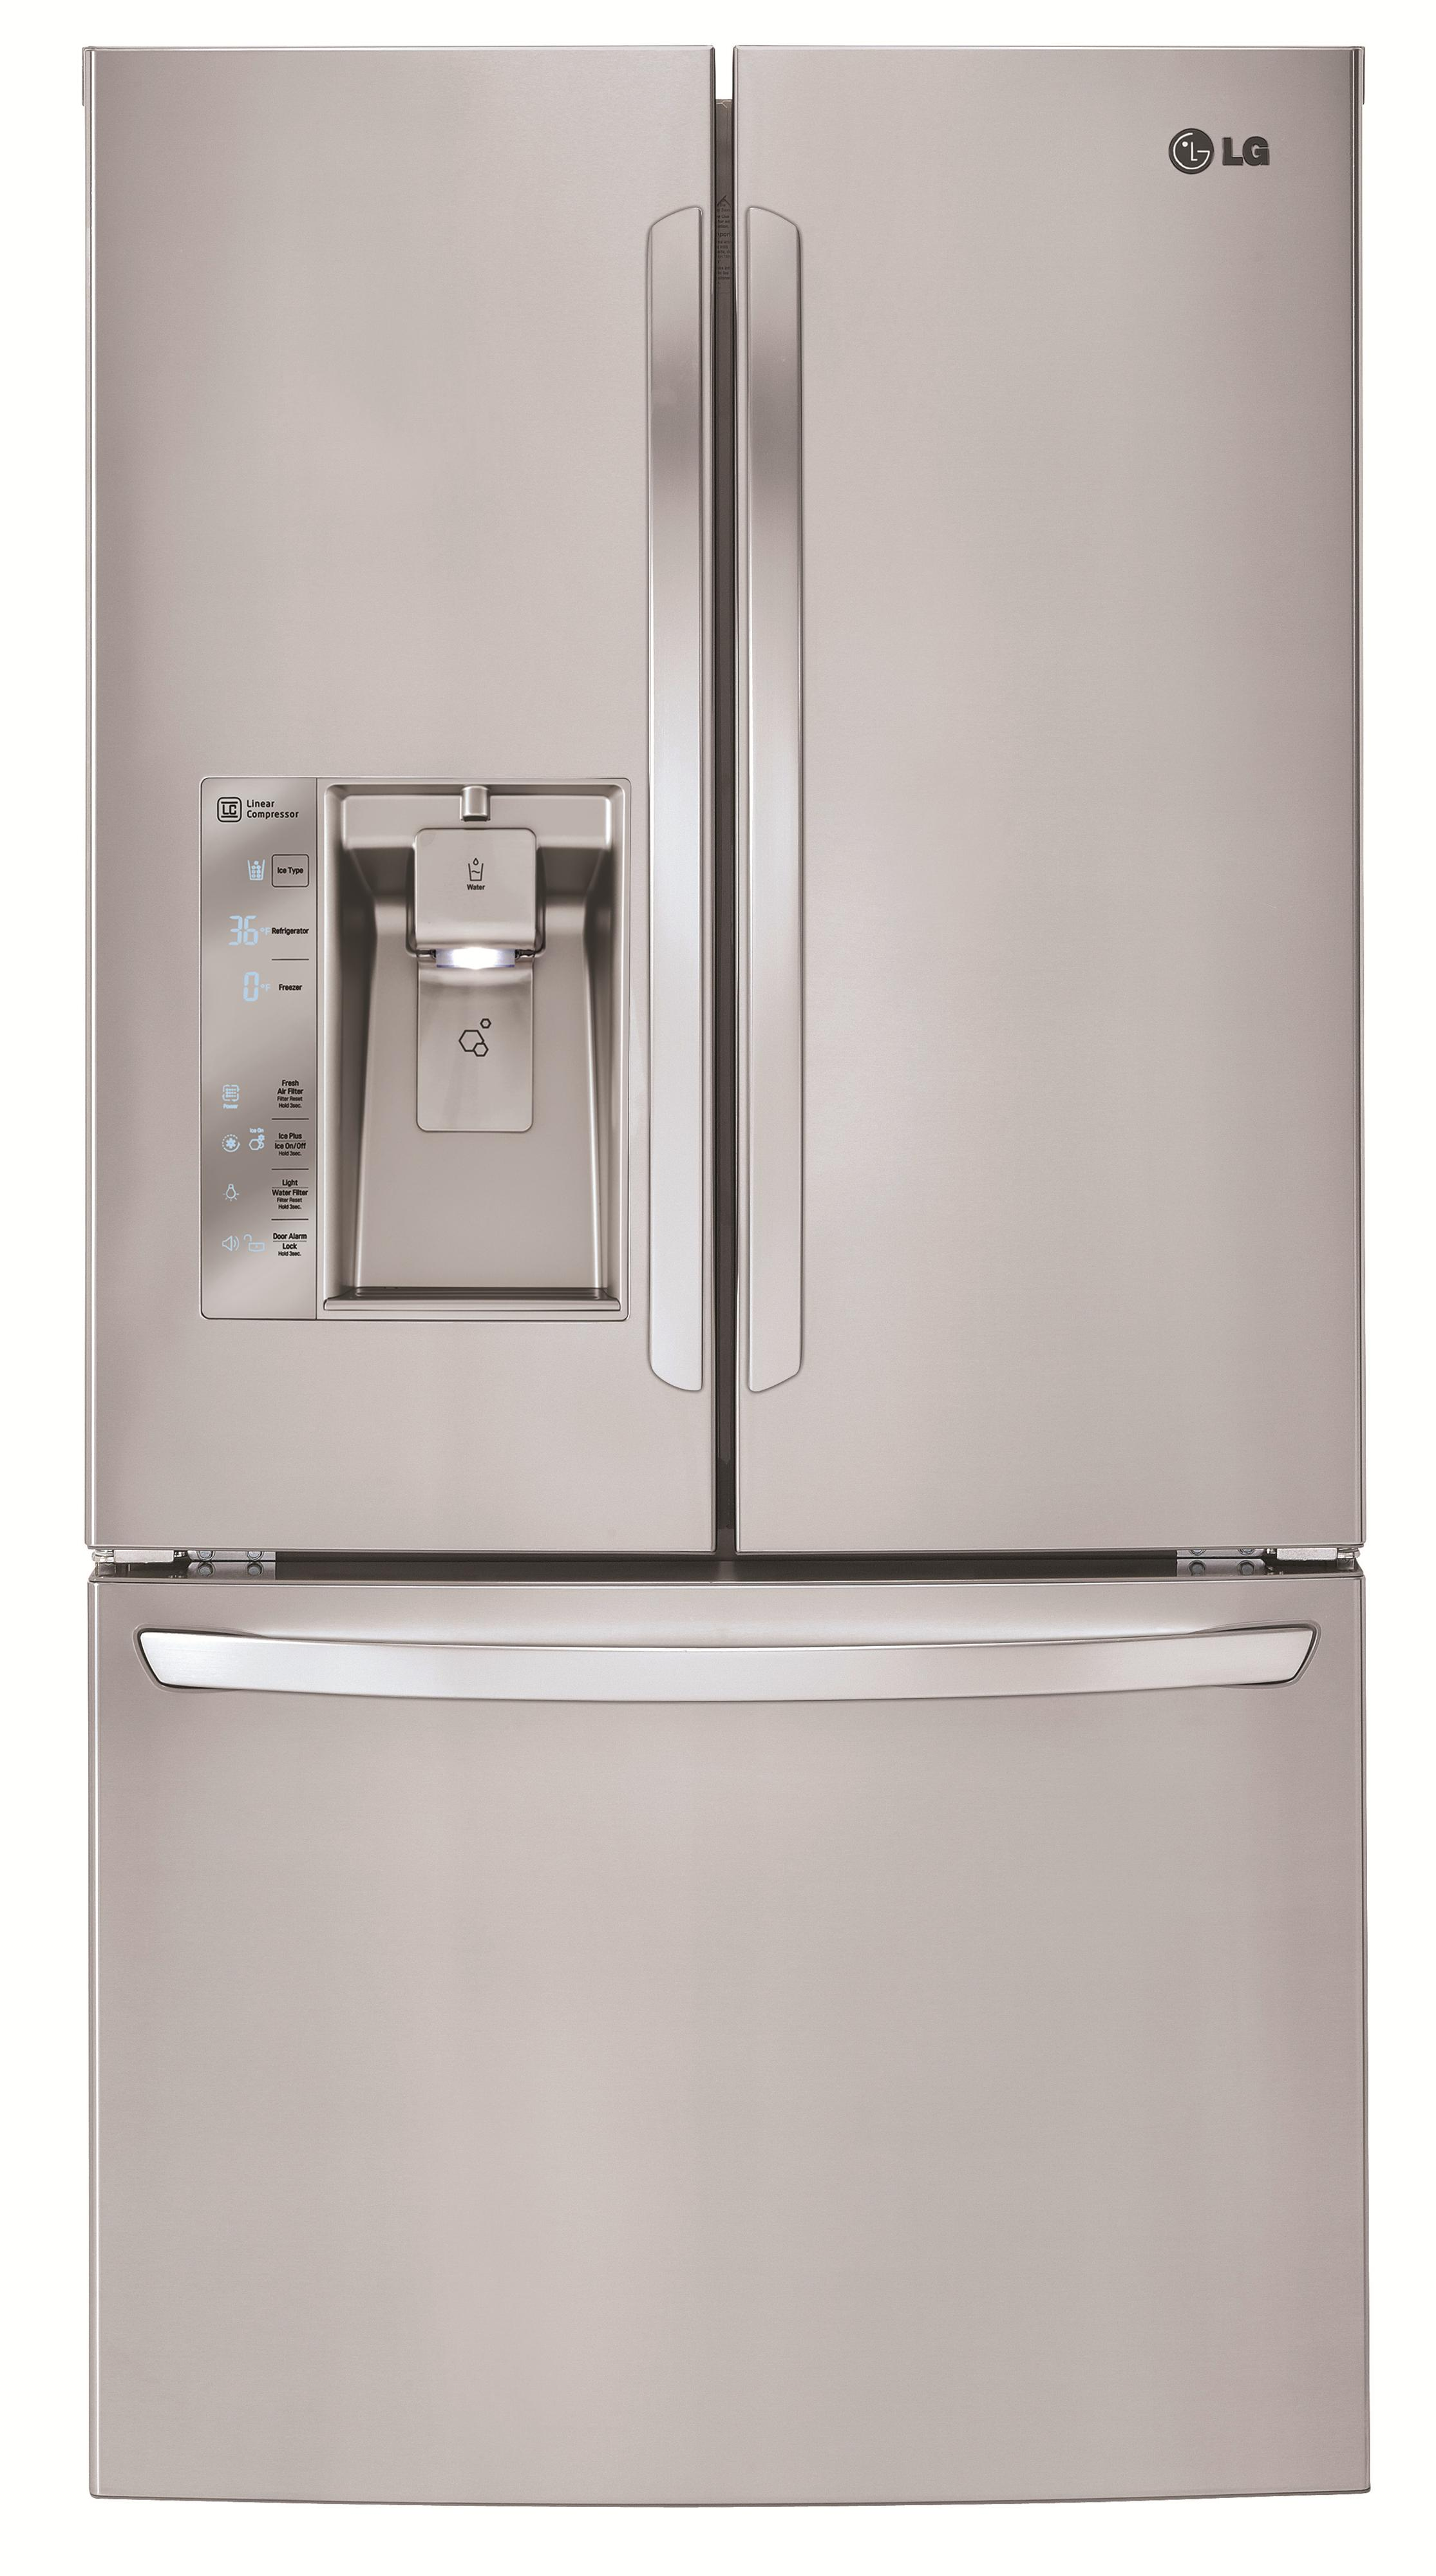 LG Appliances French Door Refrigerators 32 Cu. Ft. 3 Door French Door Fridge - Item Number: LFXS32726S